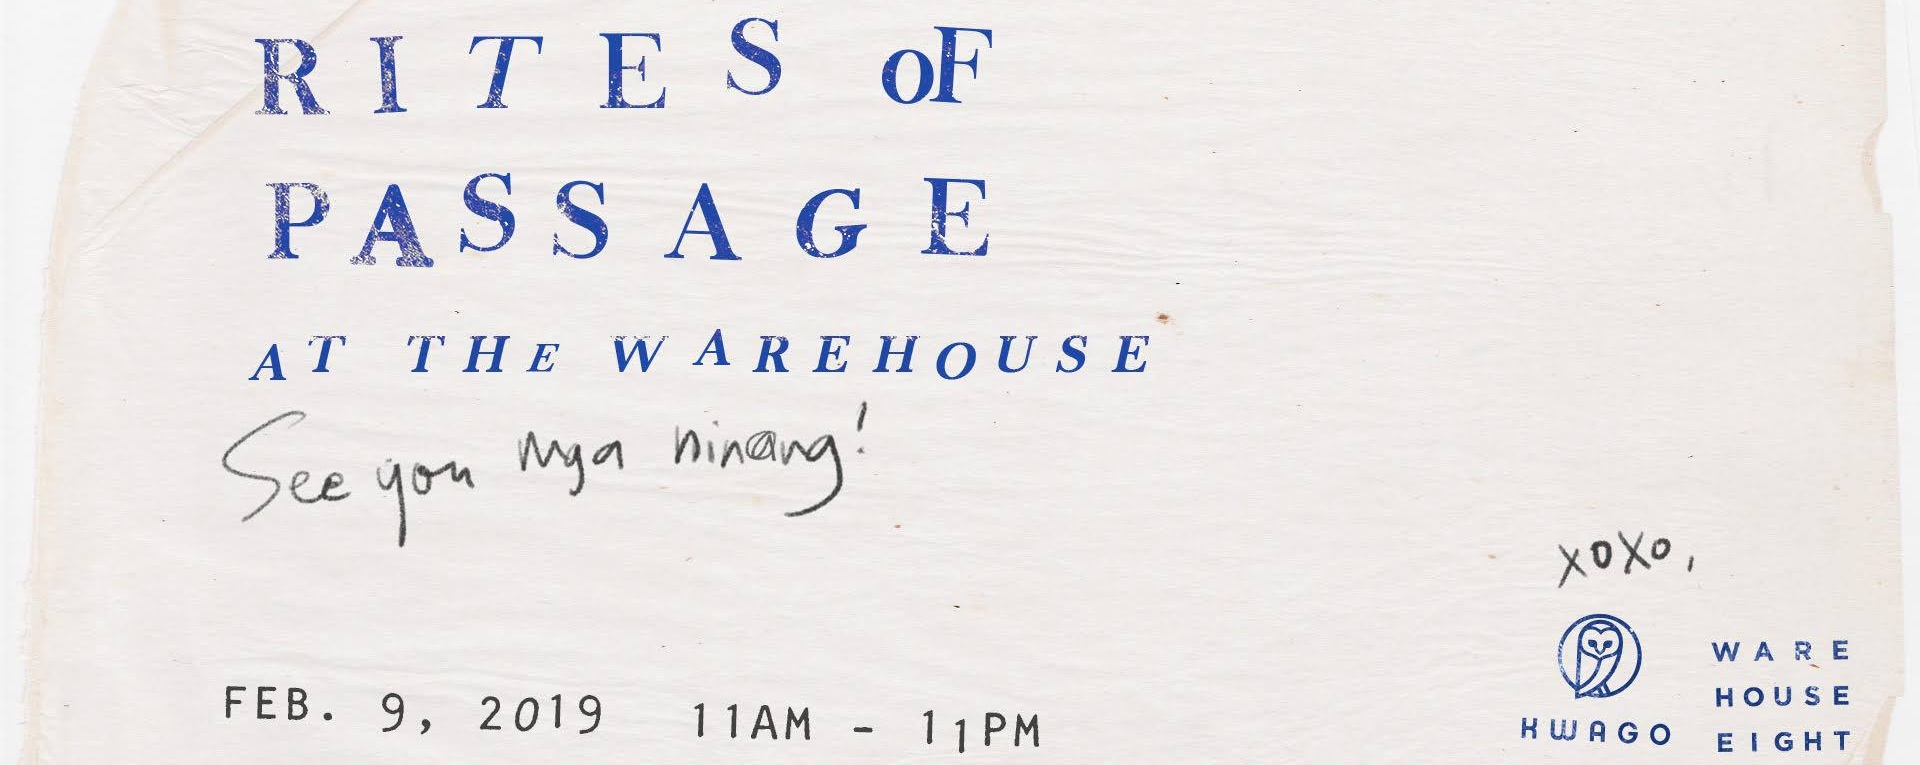 Rites of Passage at The Warehouse